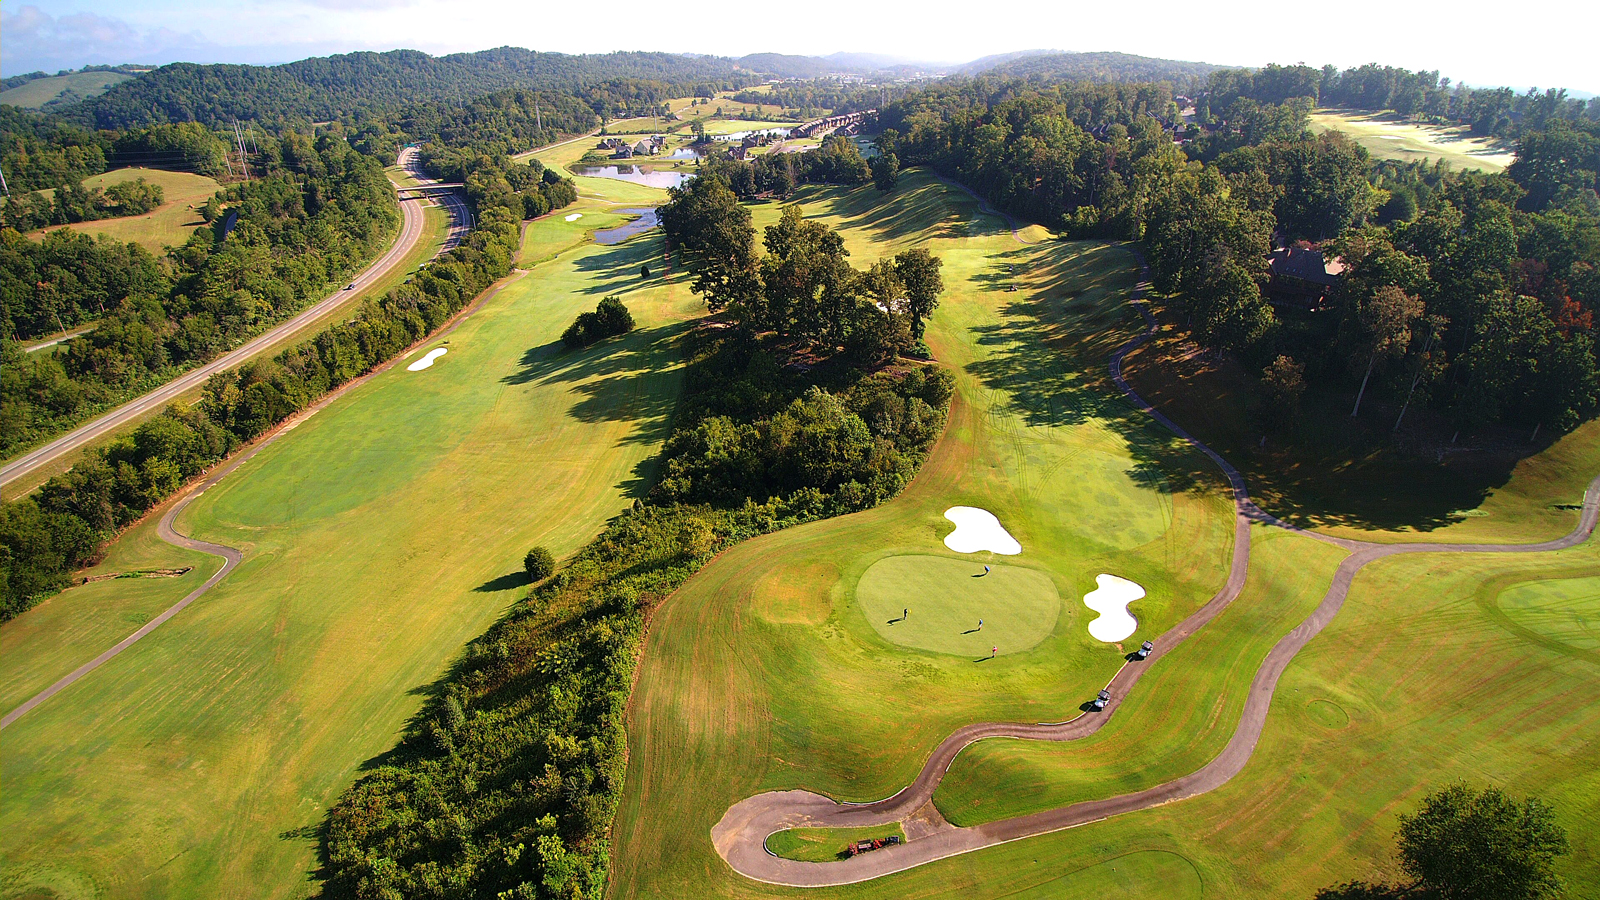 Drone Avalon Golf Course Community Photography in Knoxville Tennessee